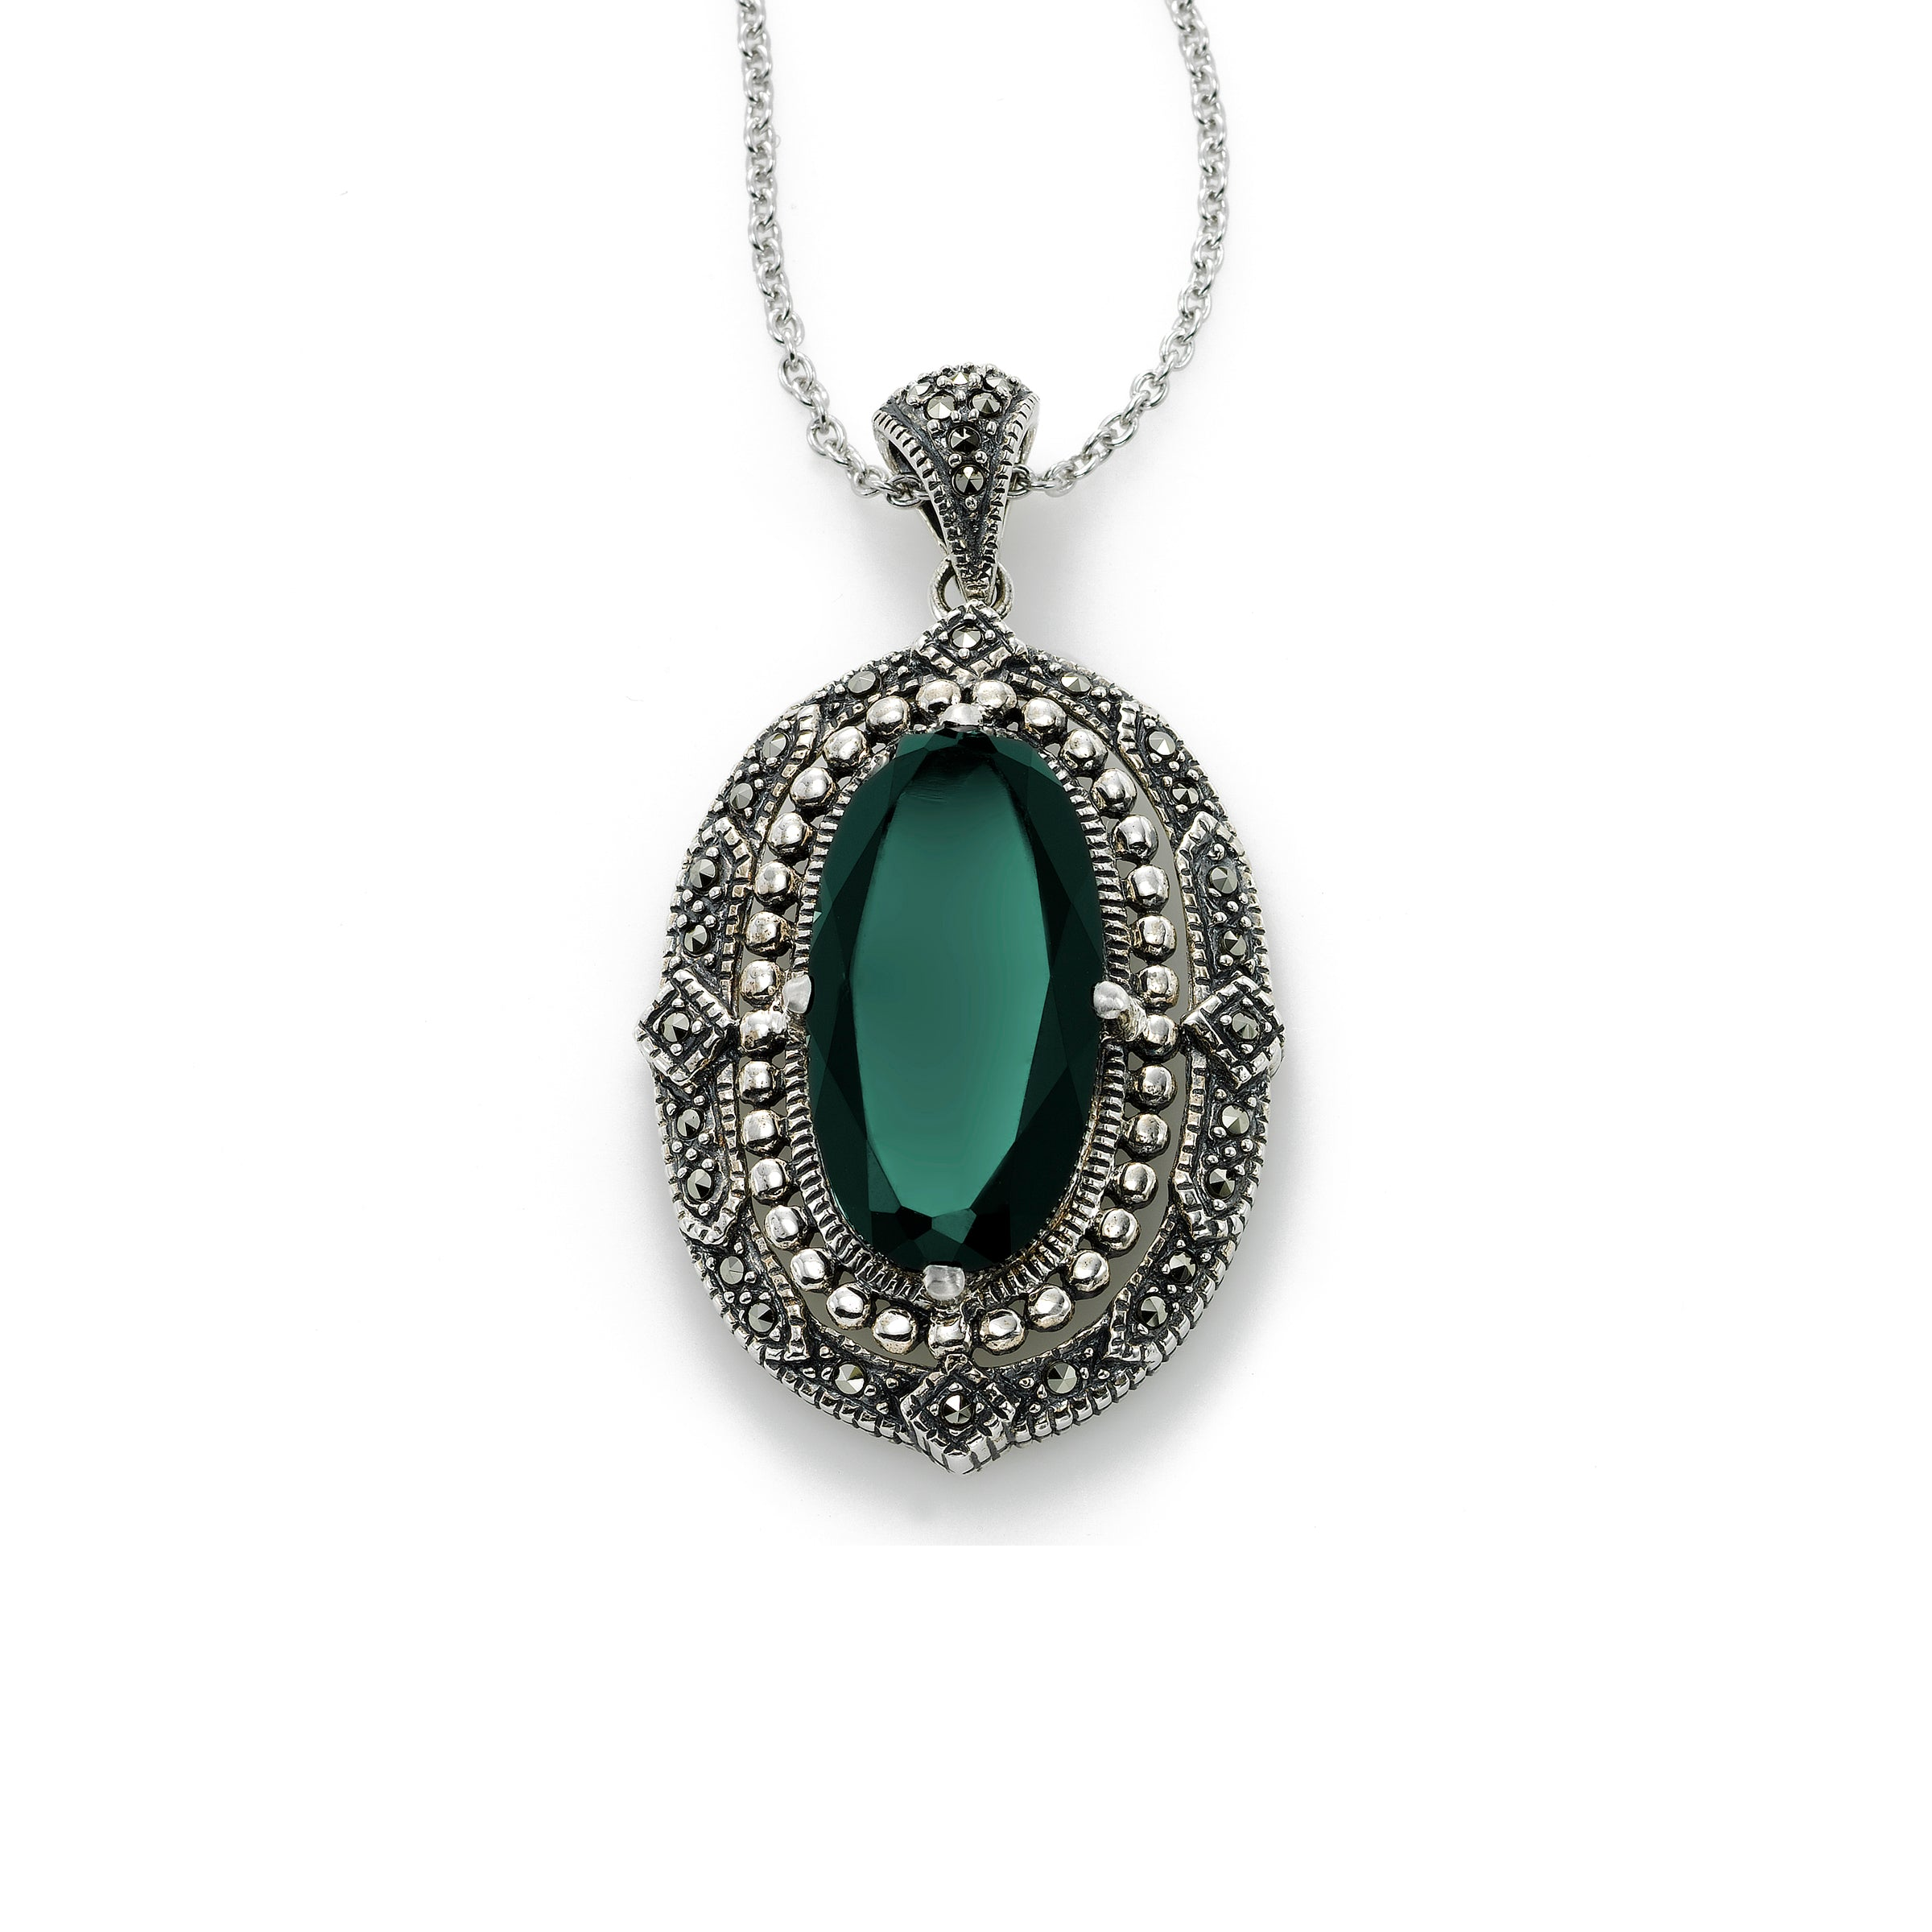 Swarovski Marcasite Pendant with Green Agate, Sterling Silver